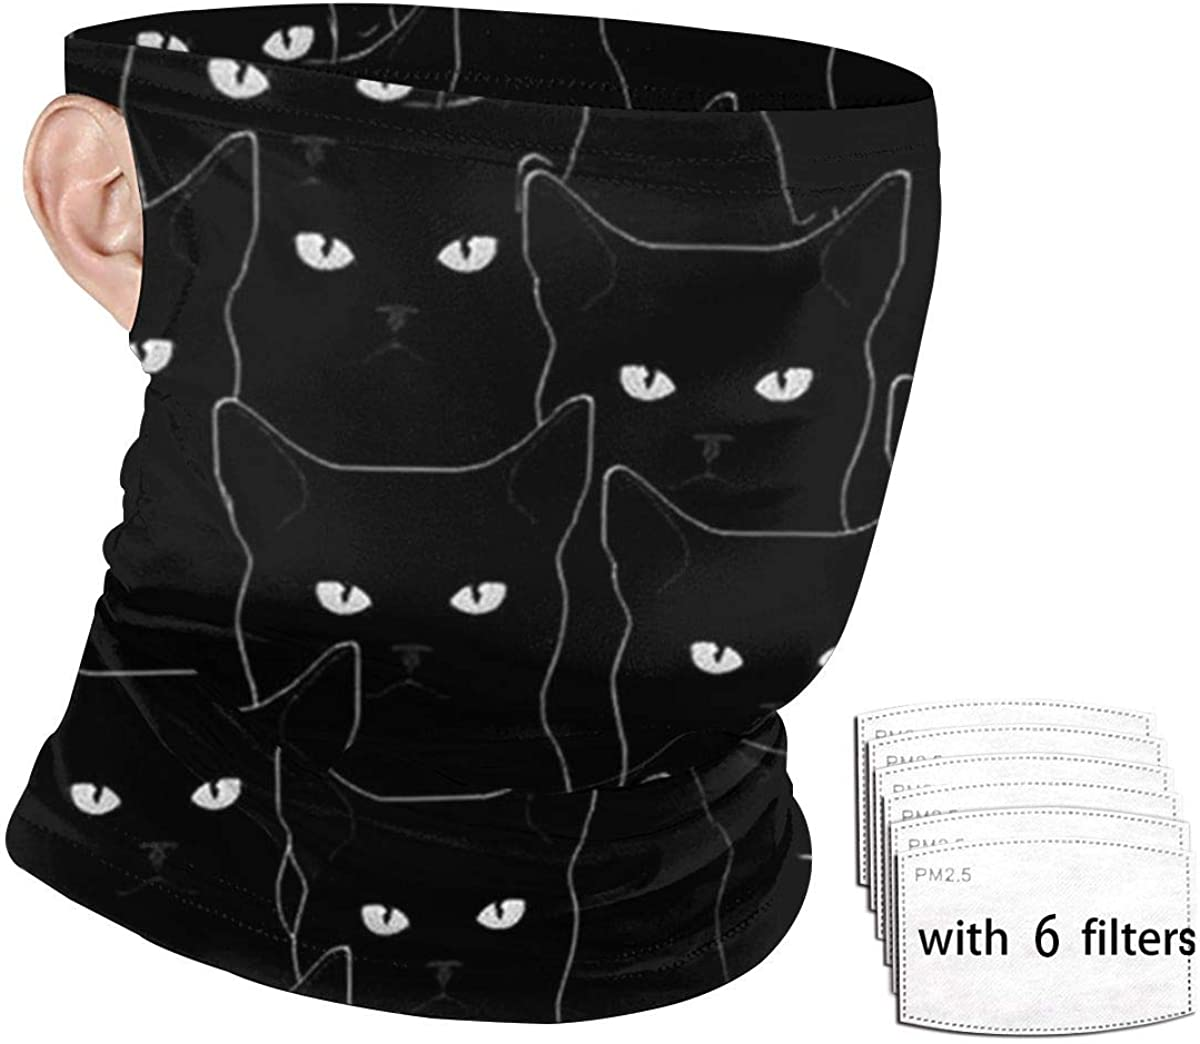 Bandanas Headwrap White Black Brown Cat Balaclava